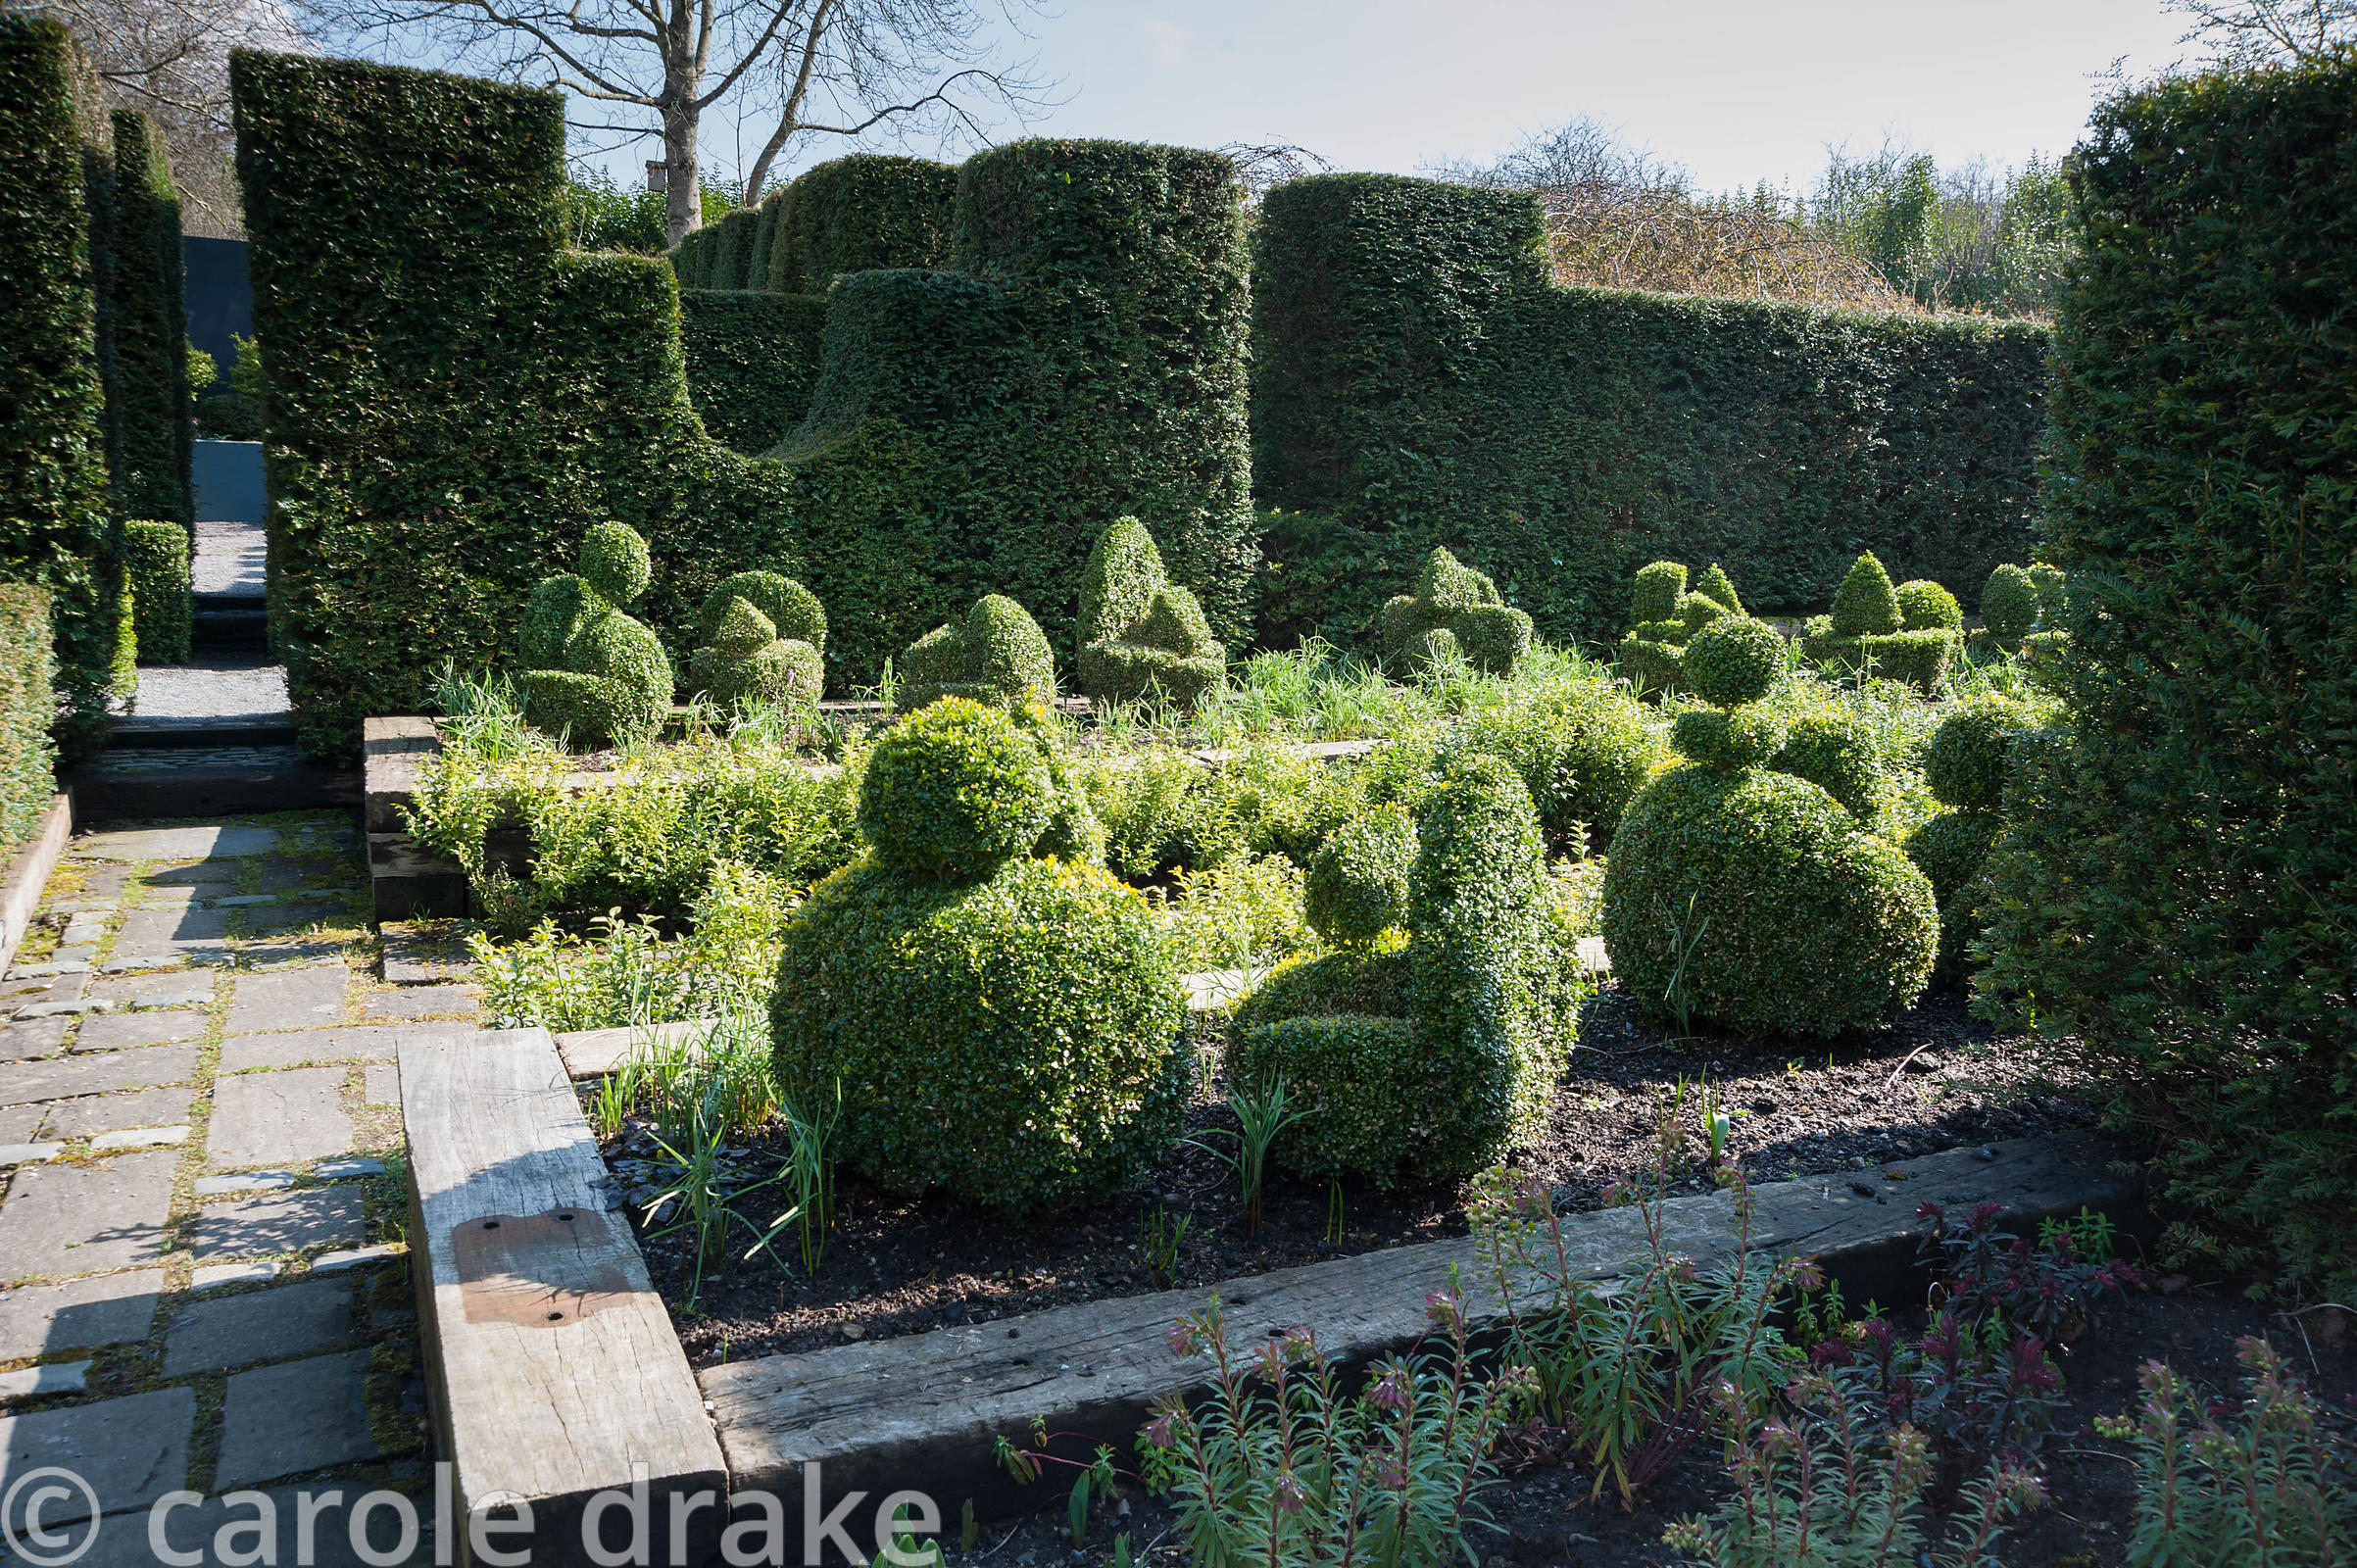 Formall garden full of box topiary shapes in raised beds framed by tall yew hedges.